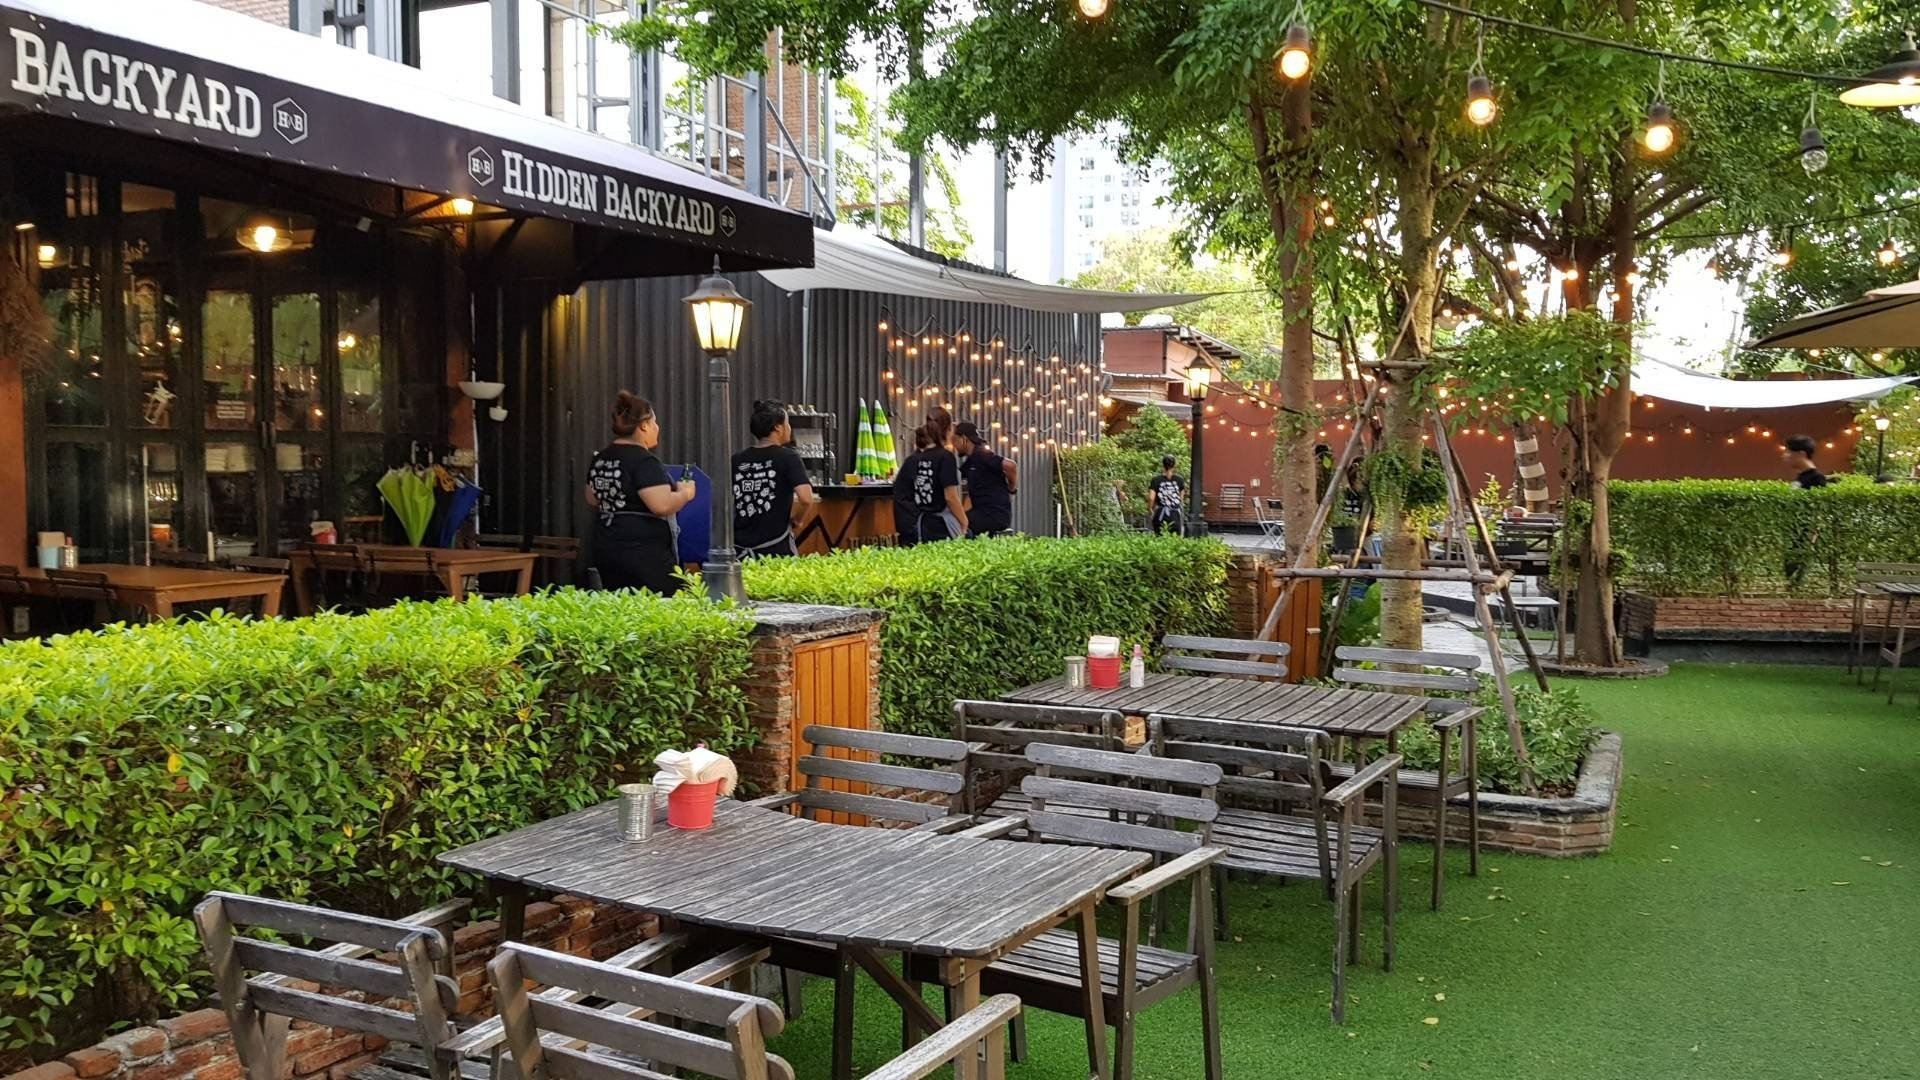 Hidden Backyard Cafe & Hangout